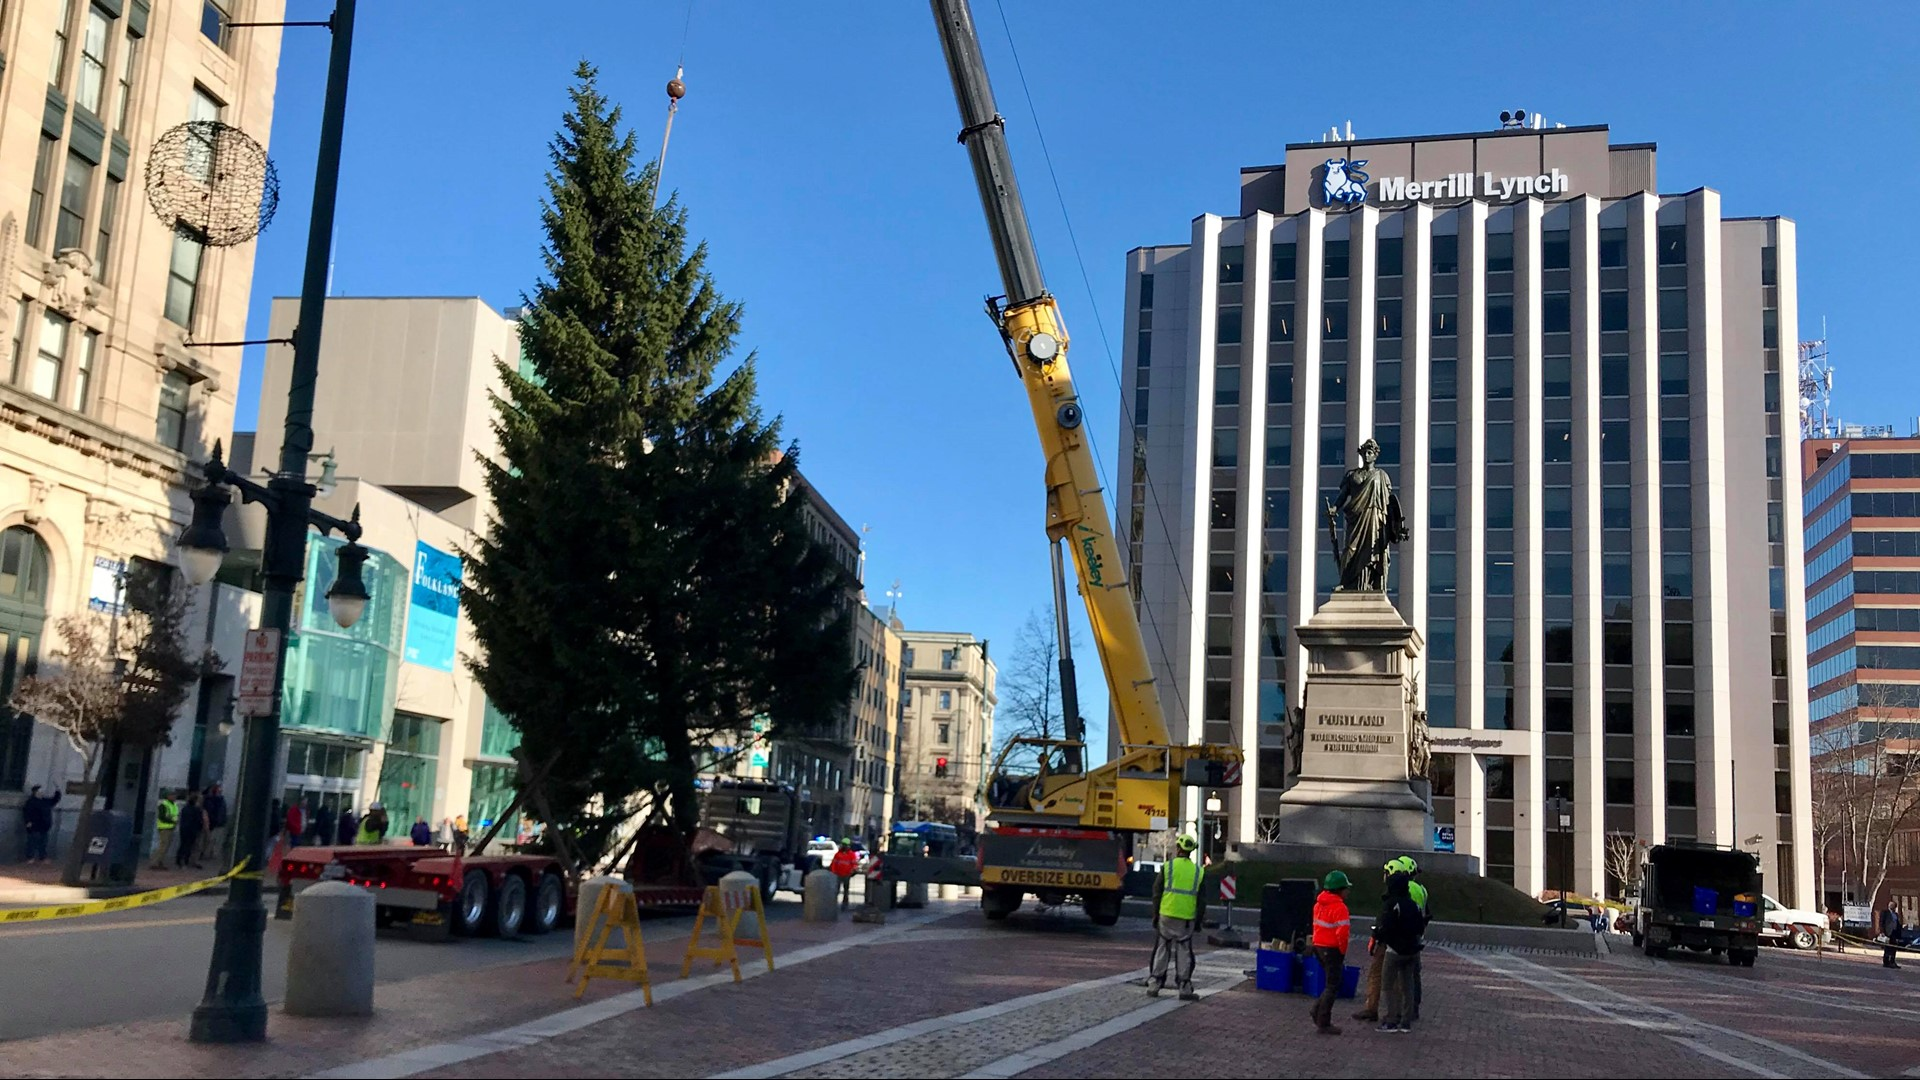 Portland Maine Monument Square Christmas Tree 2021 Holiday Tree From Deering Oaks Goes Up In Downtown Portland Newscentermaine Com